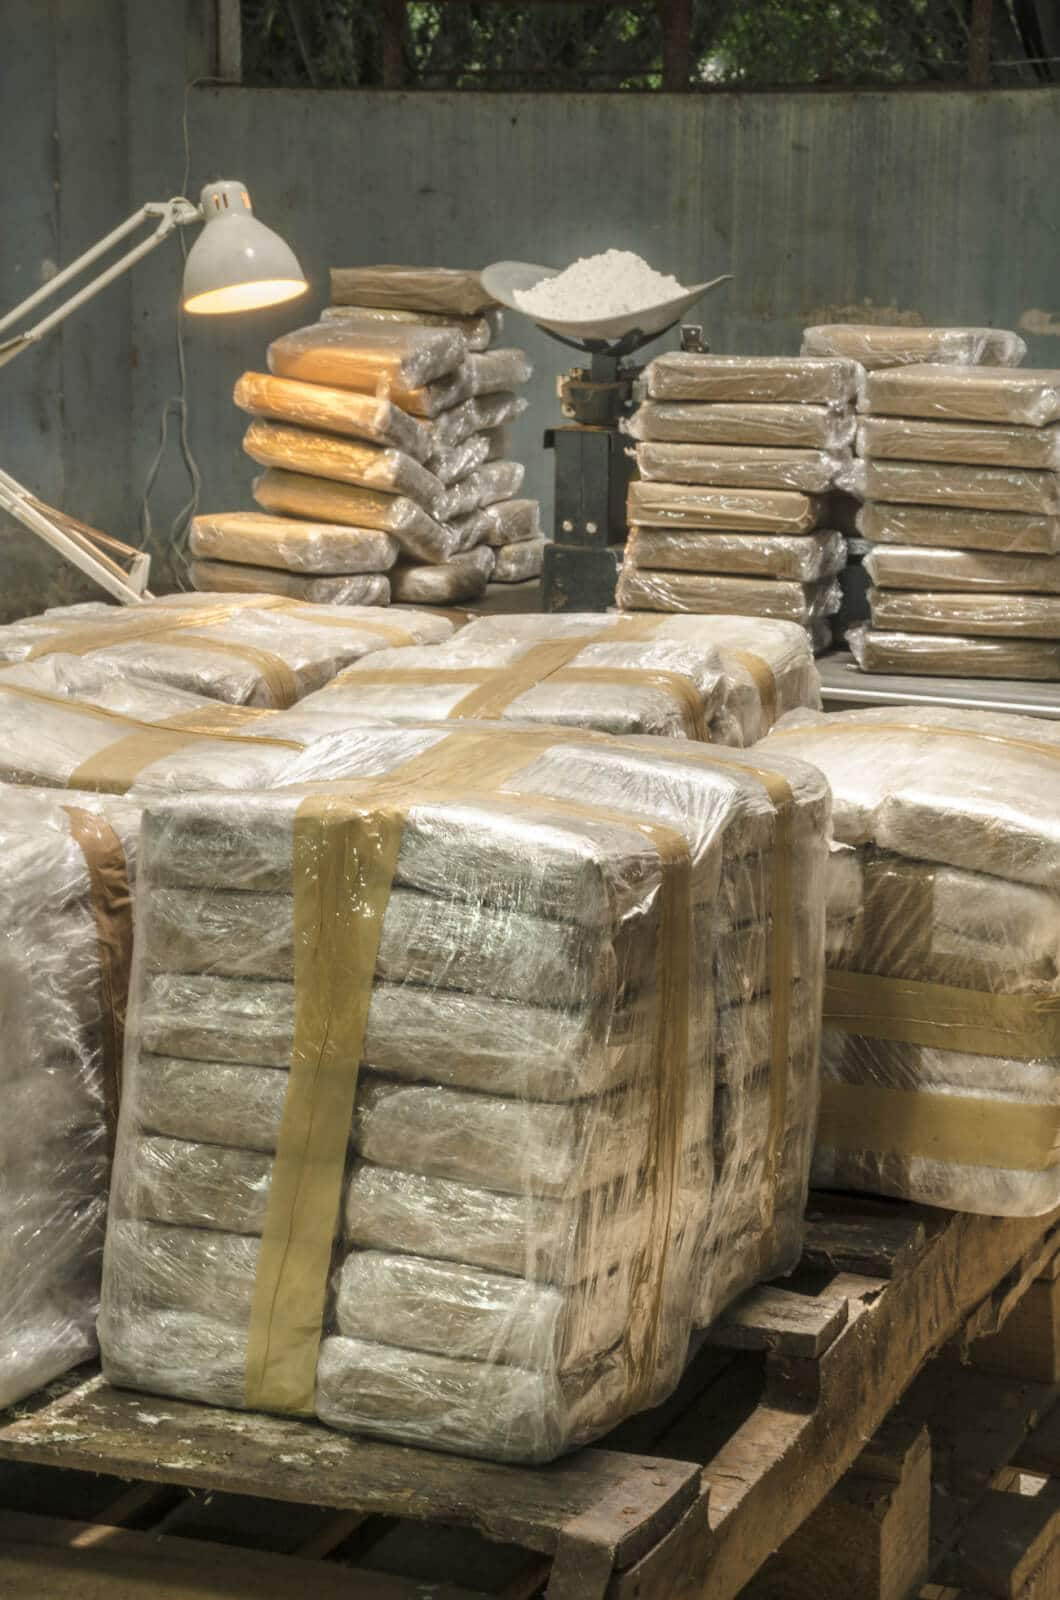 Thumnail photo of Authorities Confiscate 16 Tons of Cocaine From Cargo Ship in Philadelphia